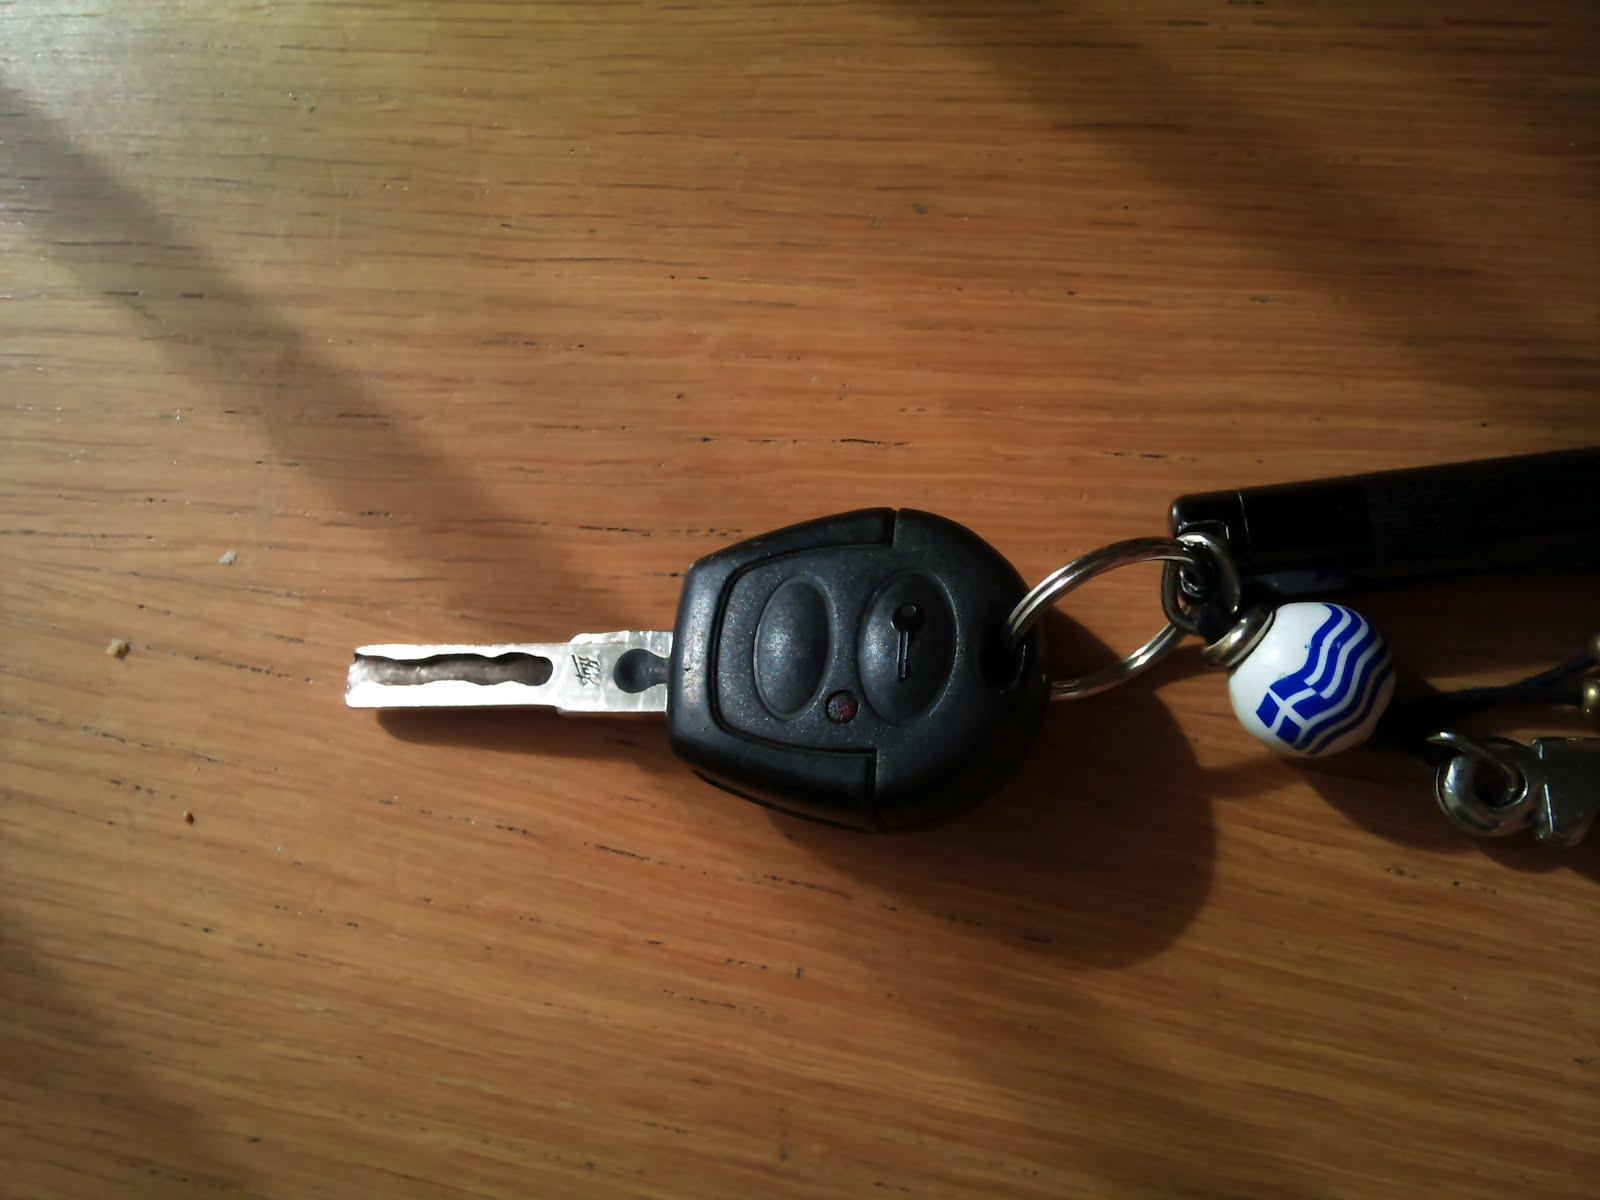 james 39 s blogs seat ibiza 1999 2002 key fob programming. Black Bedroom Furniture Sets. Home Design Ideas